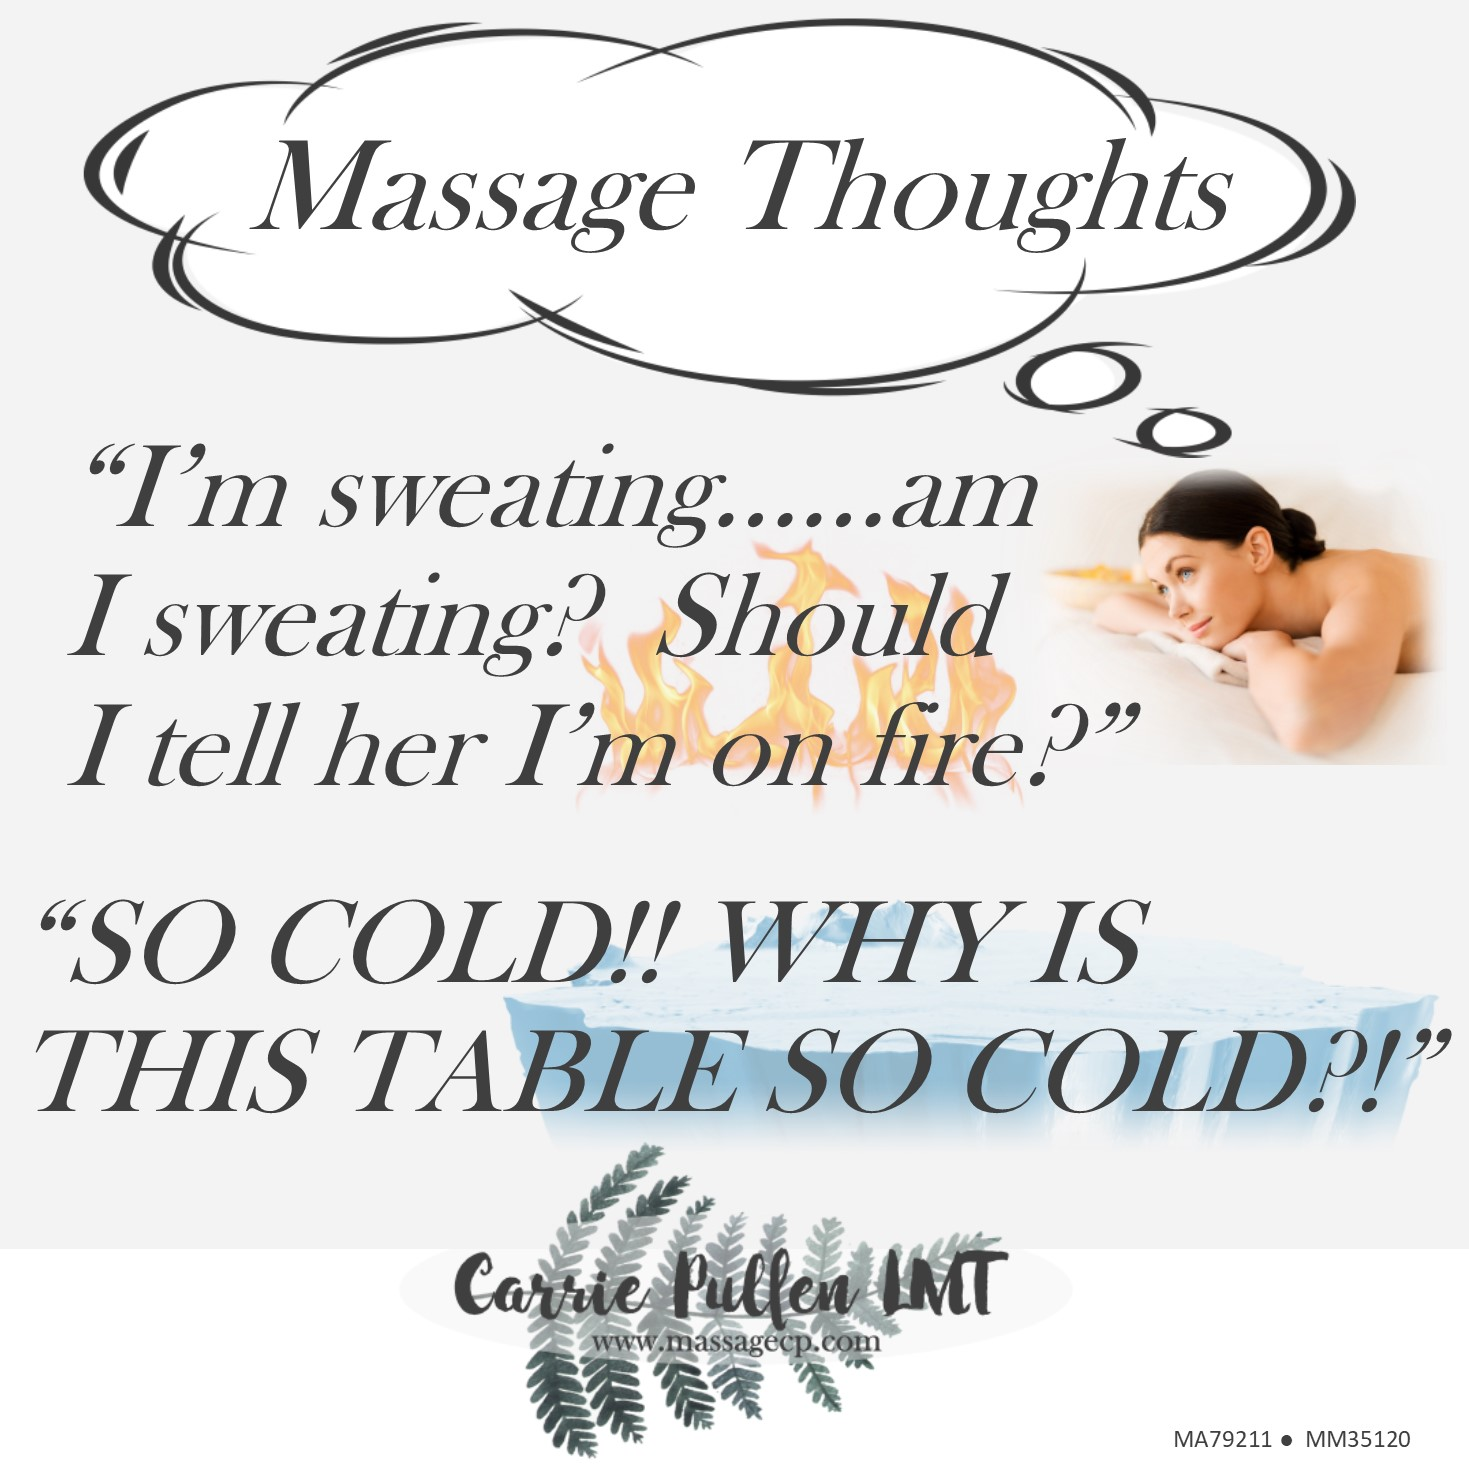 Massage Thoughts.....temperature